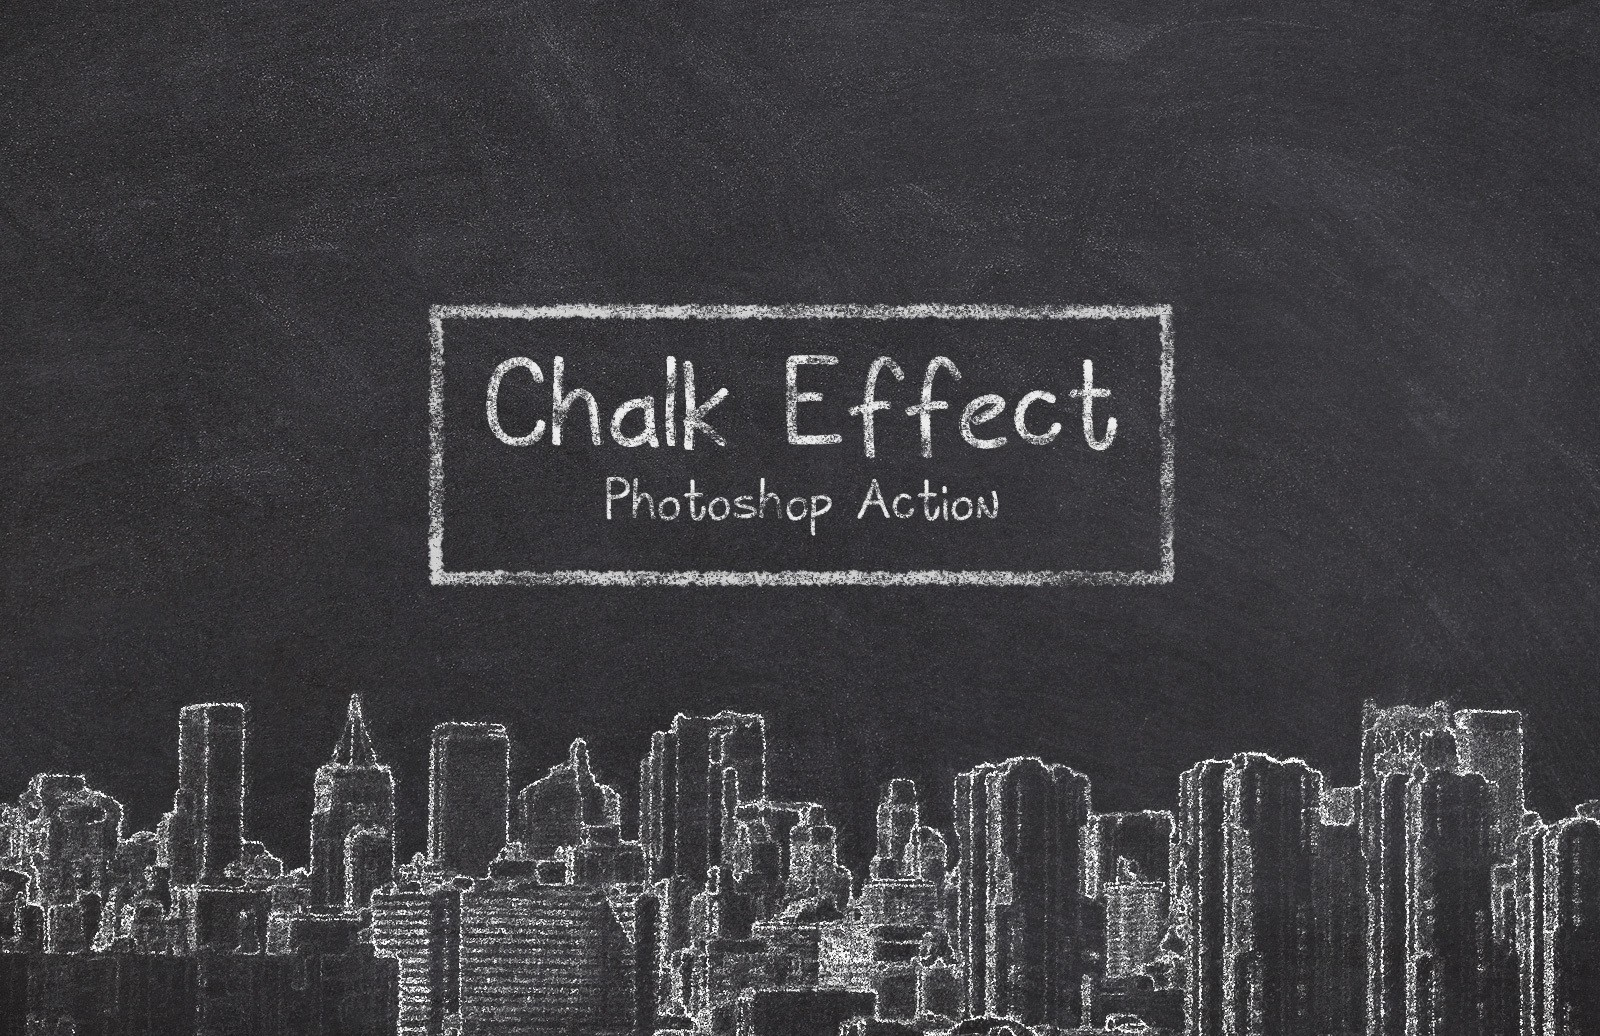 Chalk Effect Photoshop Action